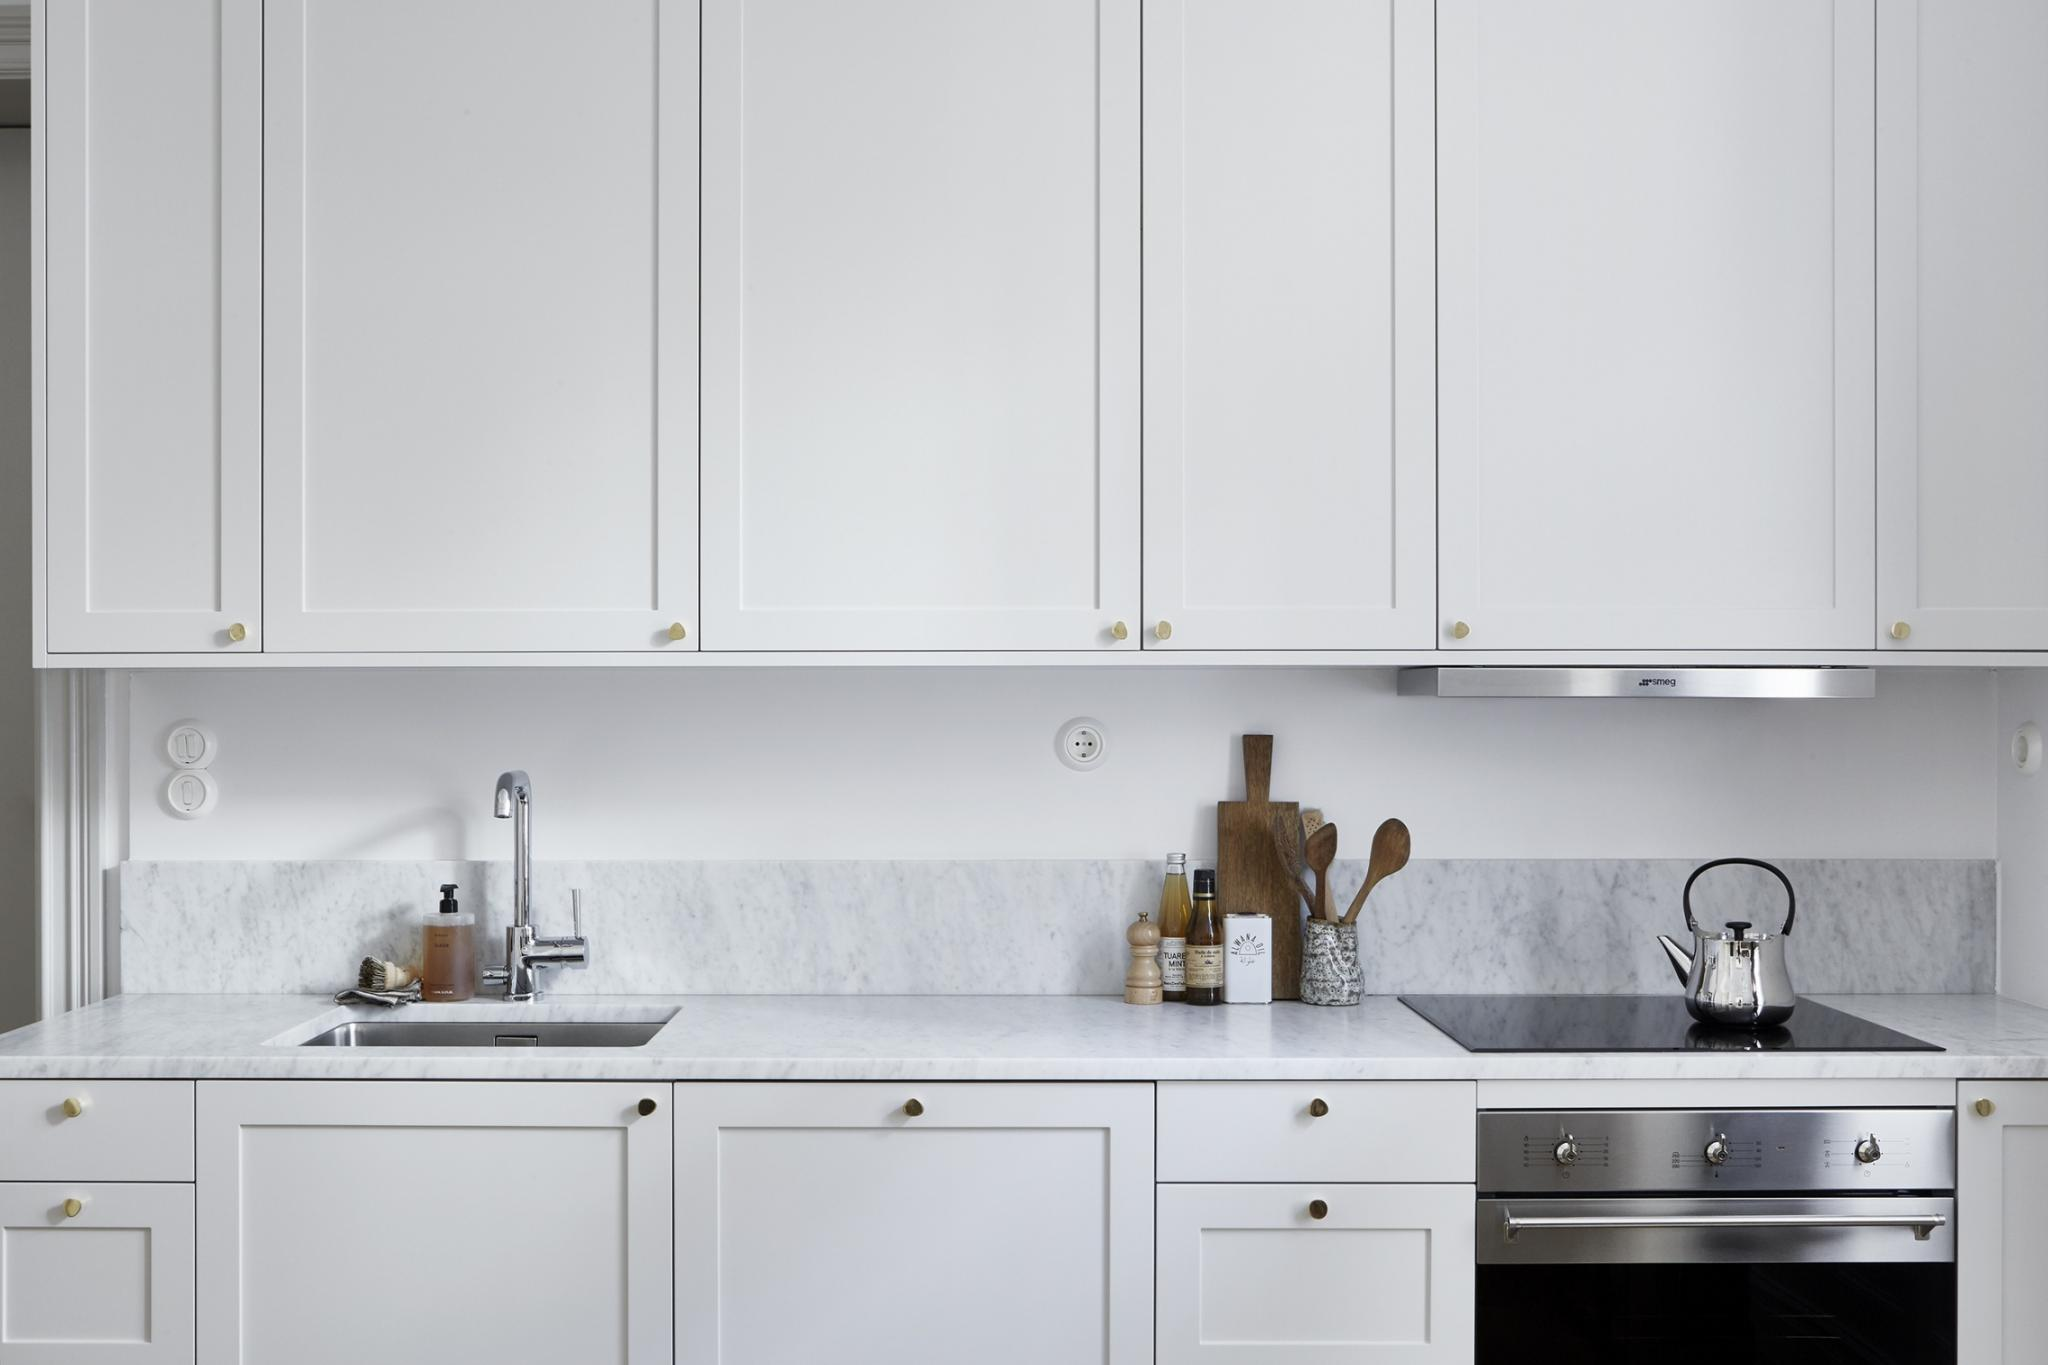 simple-framed-kitchen-cabinets-with-golden-knob-handles.jpg